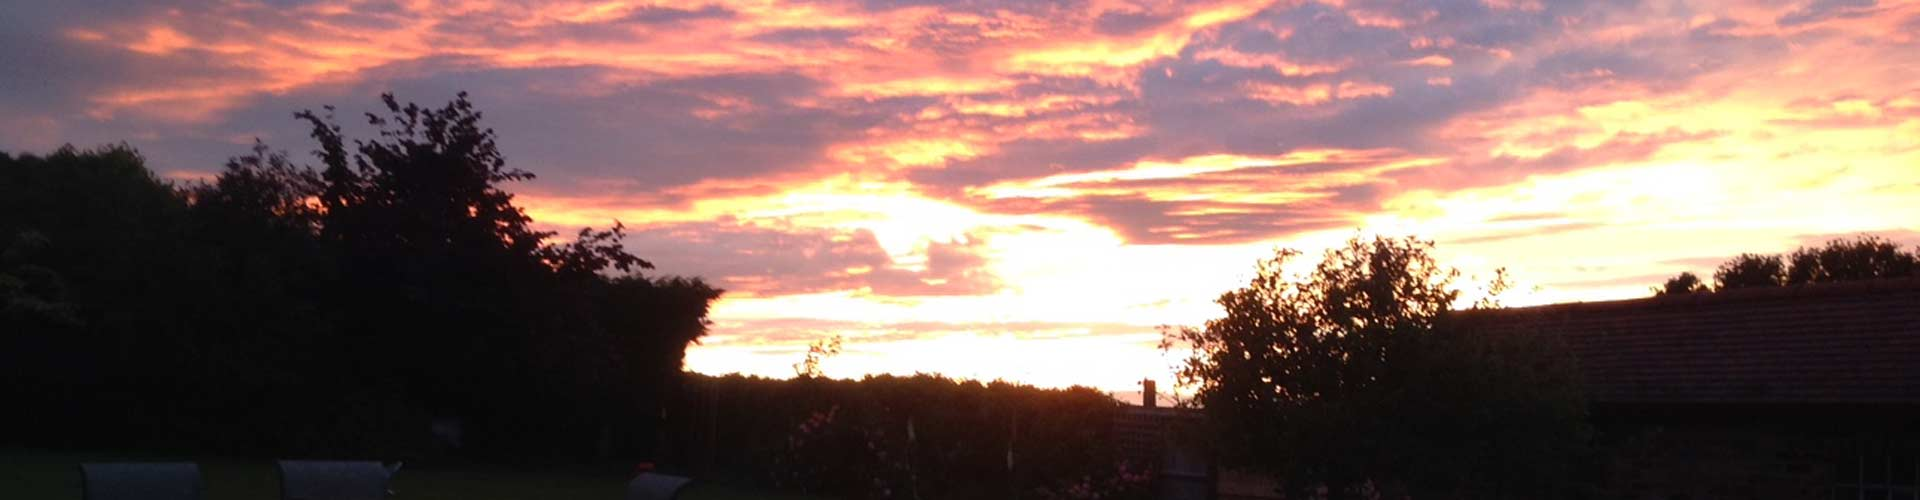 Sunset over New Wood Farm Barn and Stable